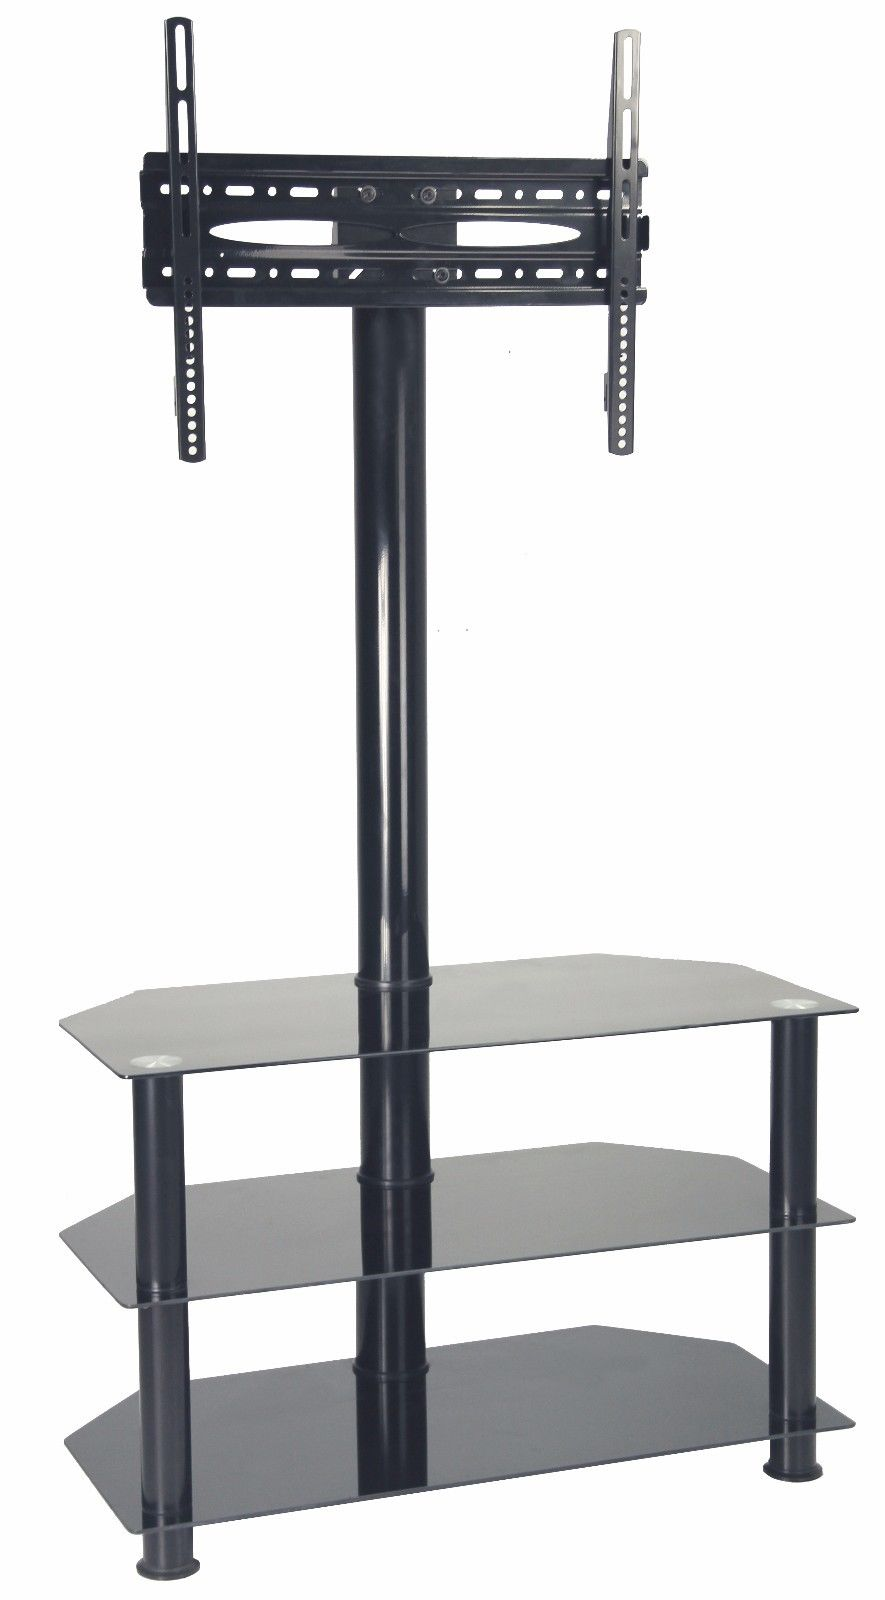 Black Cantilever Black Tempered Glass TV Stand Vesa upto 600x400mm